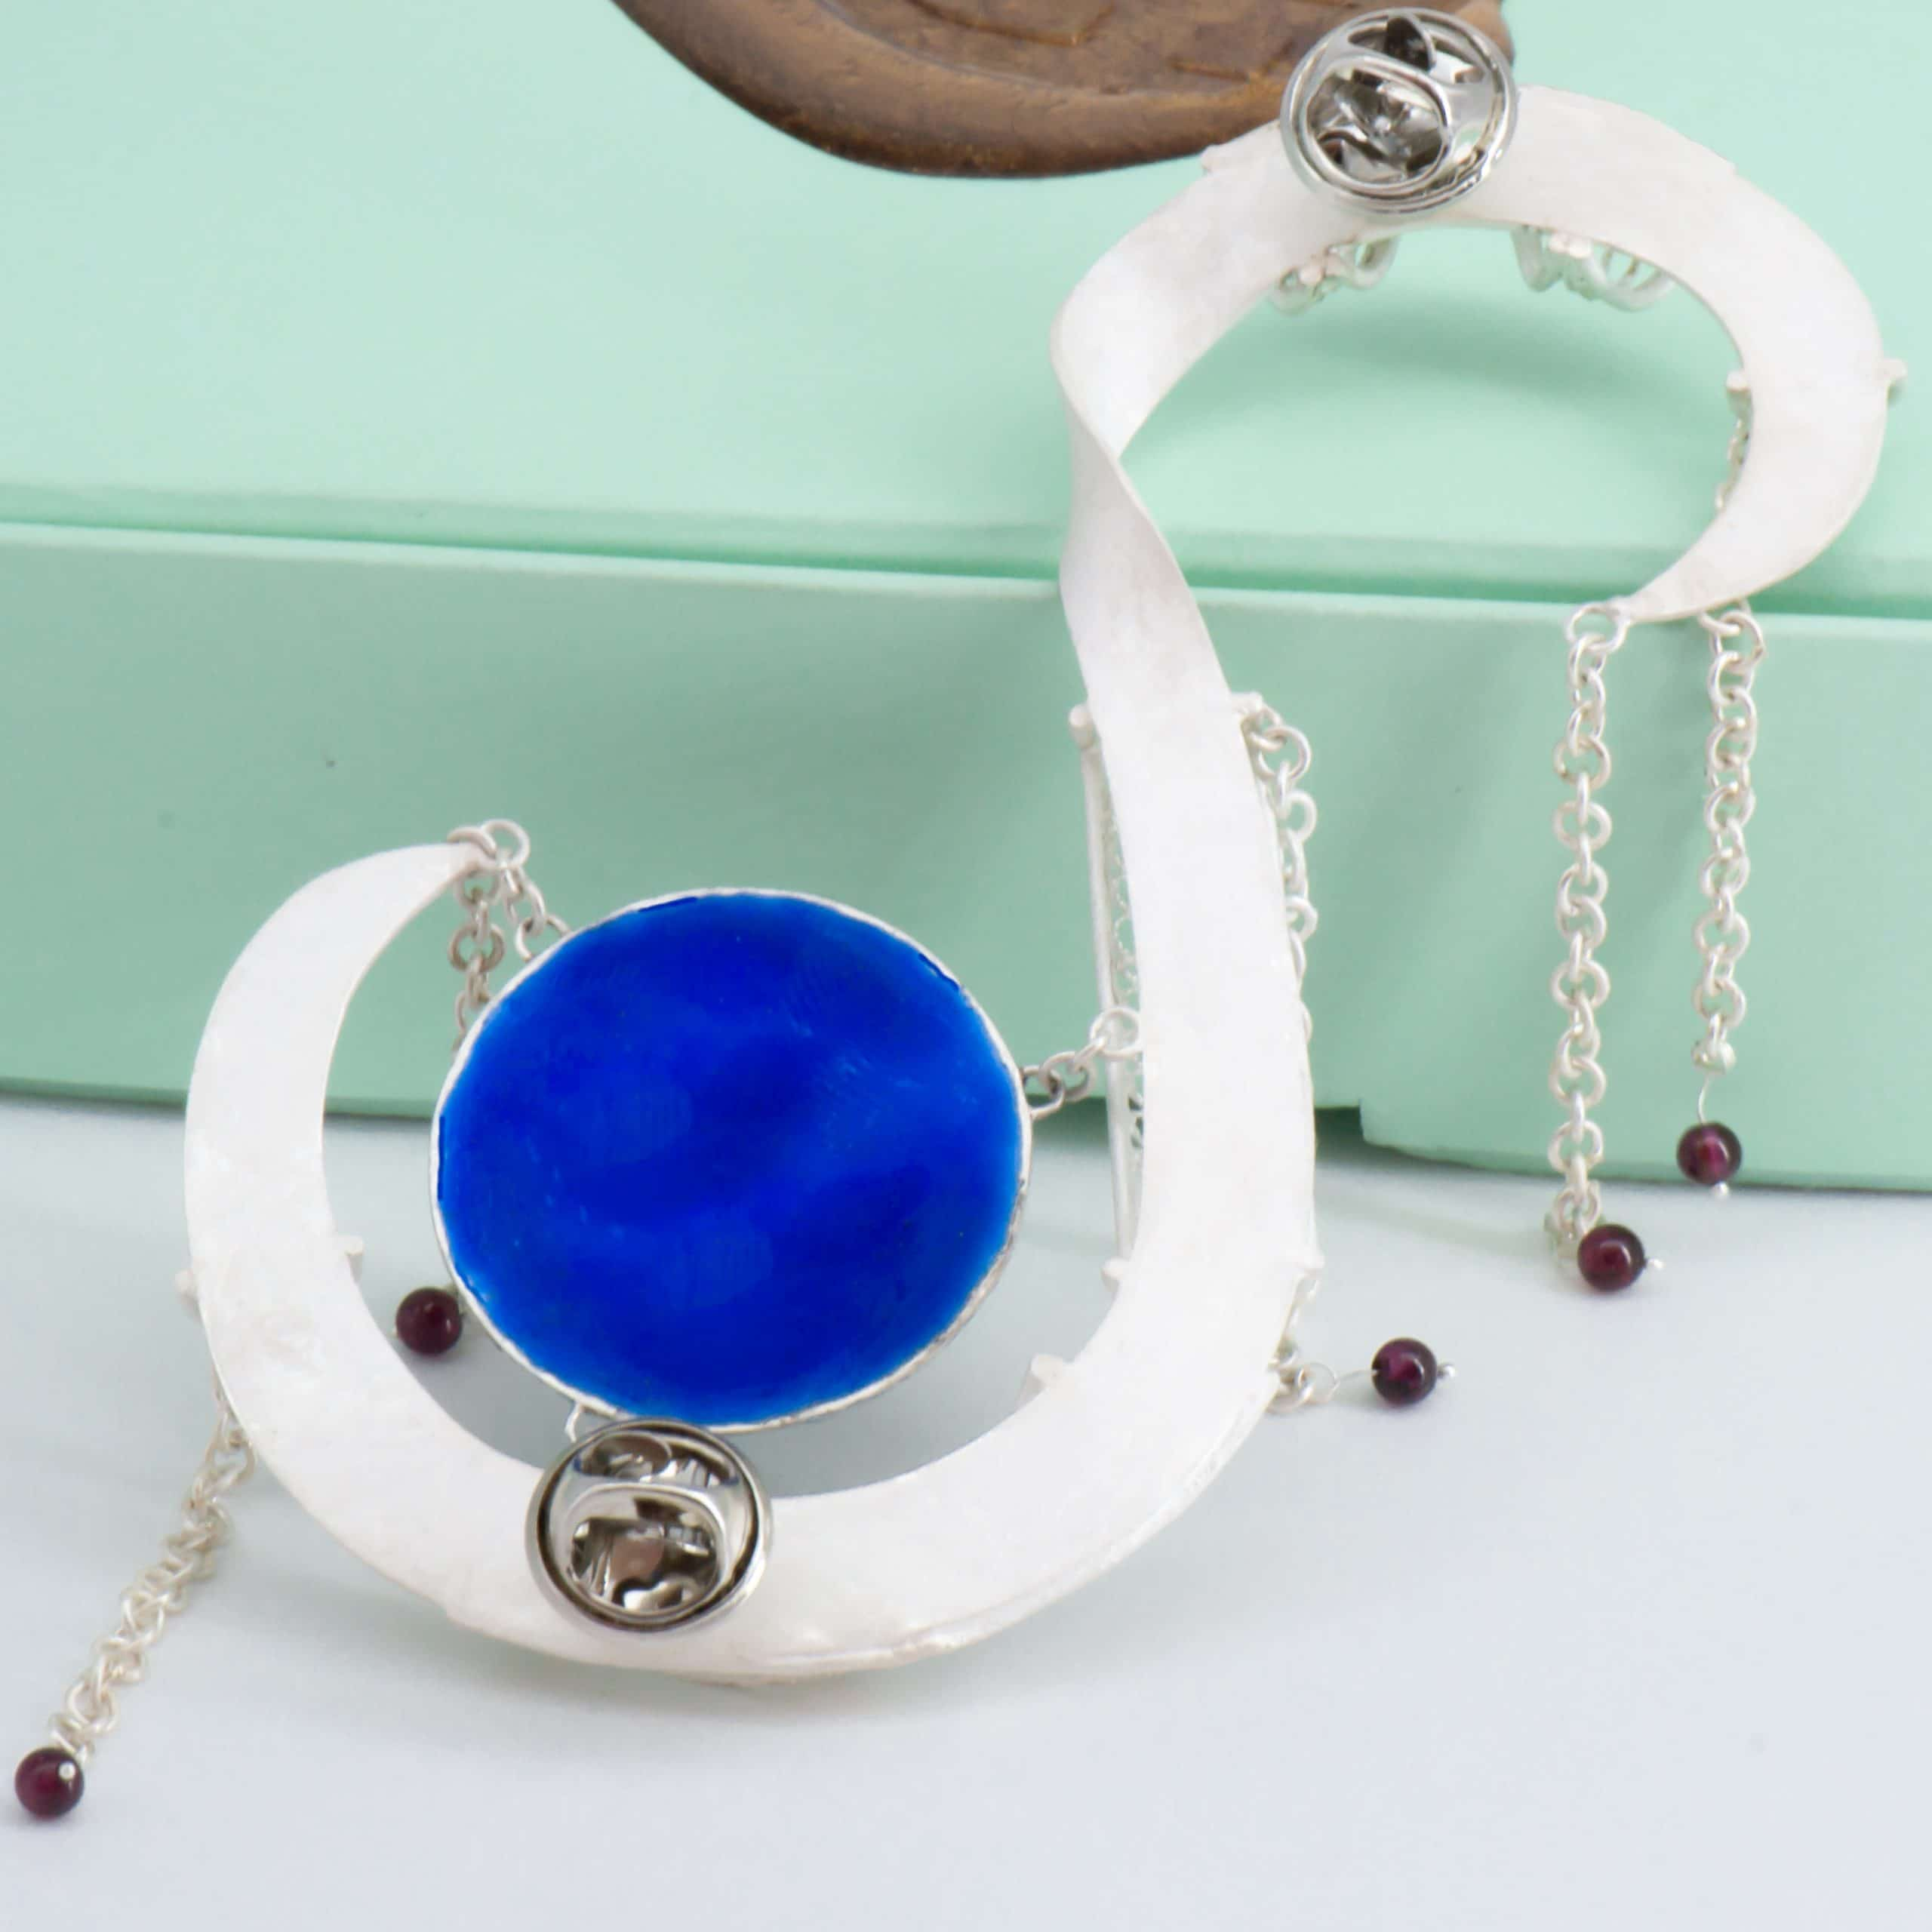 Tara Lois Jewellery back and counter enamelled Indian wedding garland inspired brooch